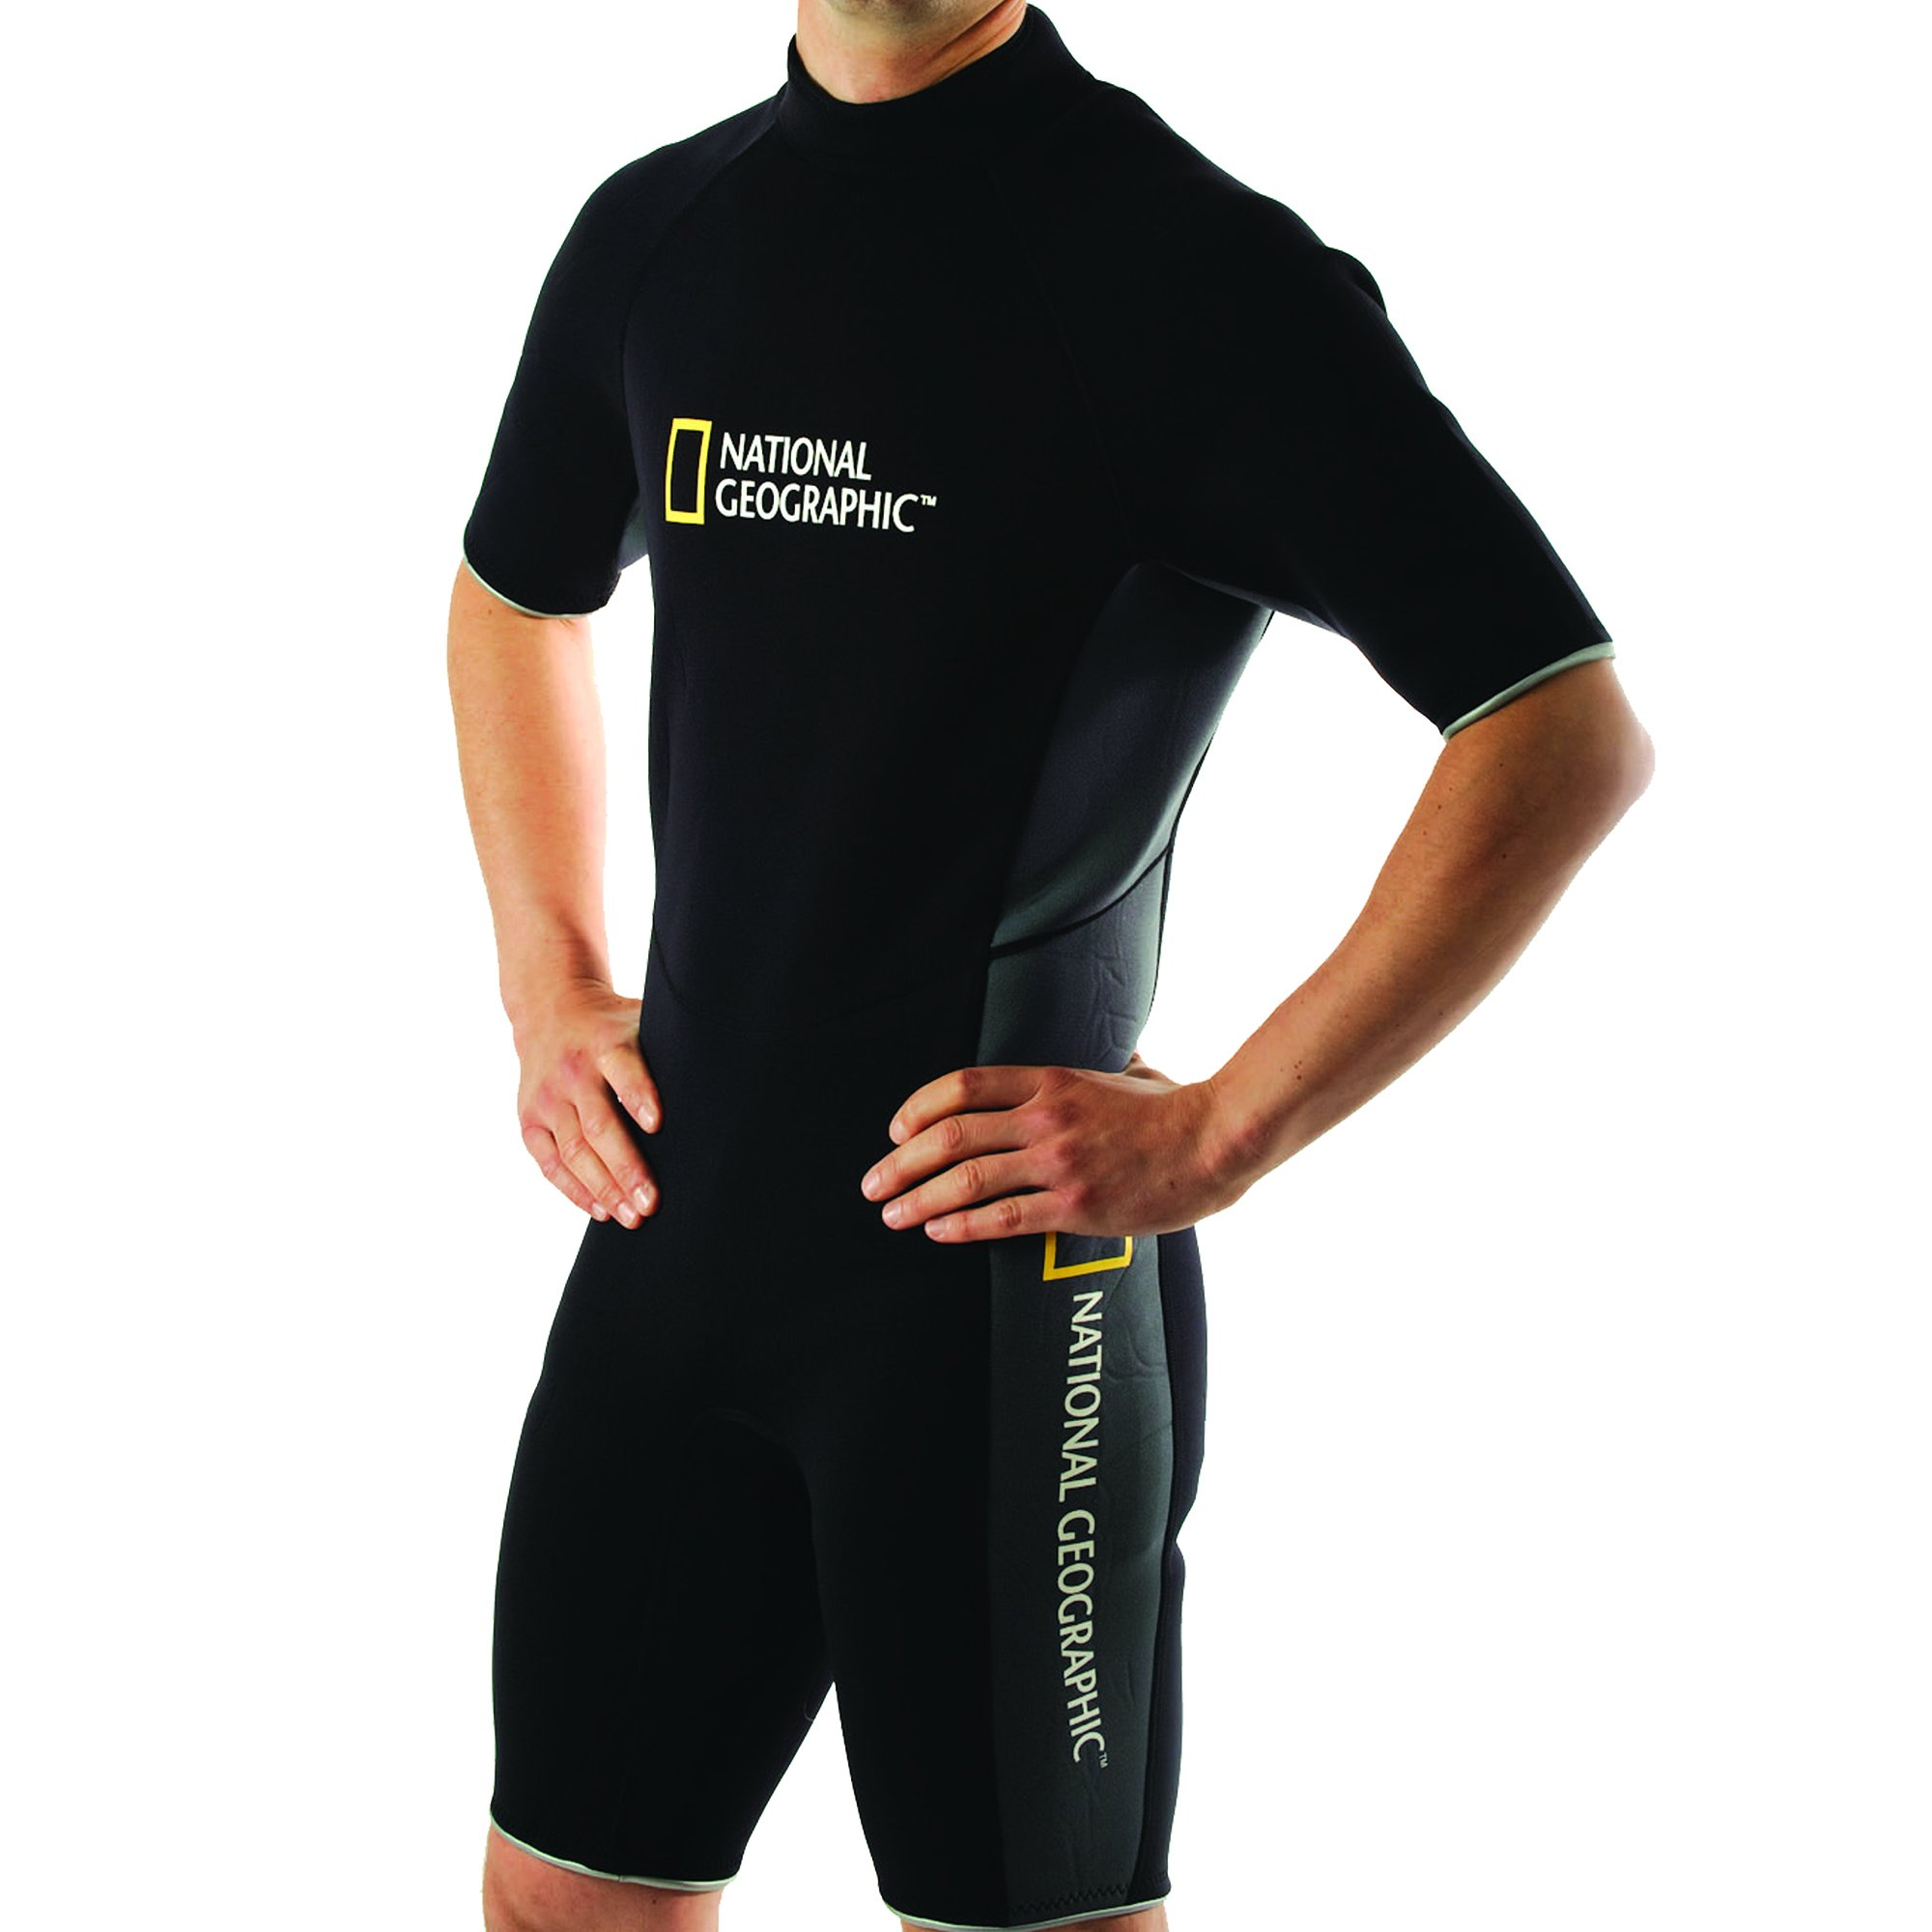 National Geographic Snorkeler Men's Classic Shorty Suit, Large 5919 by National Geographic Snorkeler (Image #1)